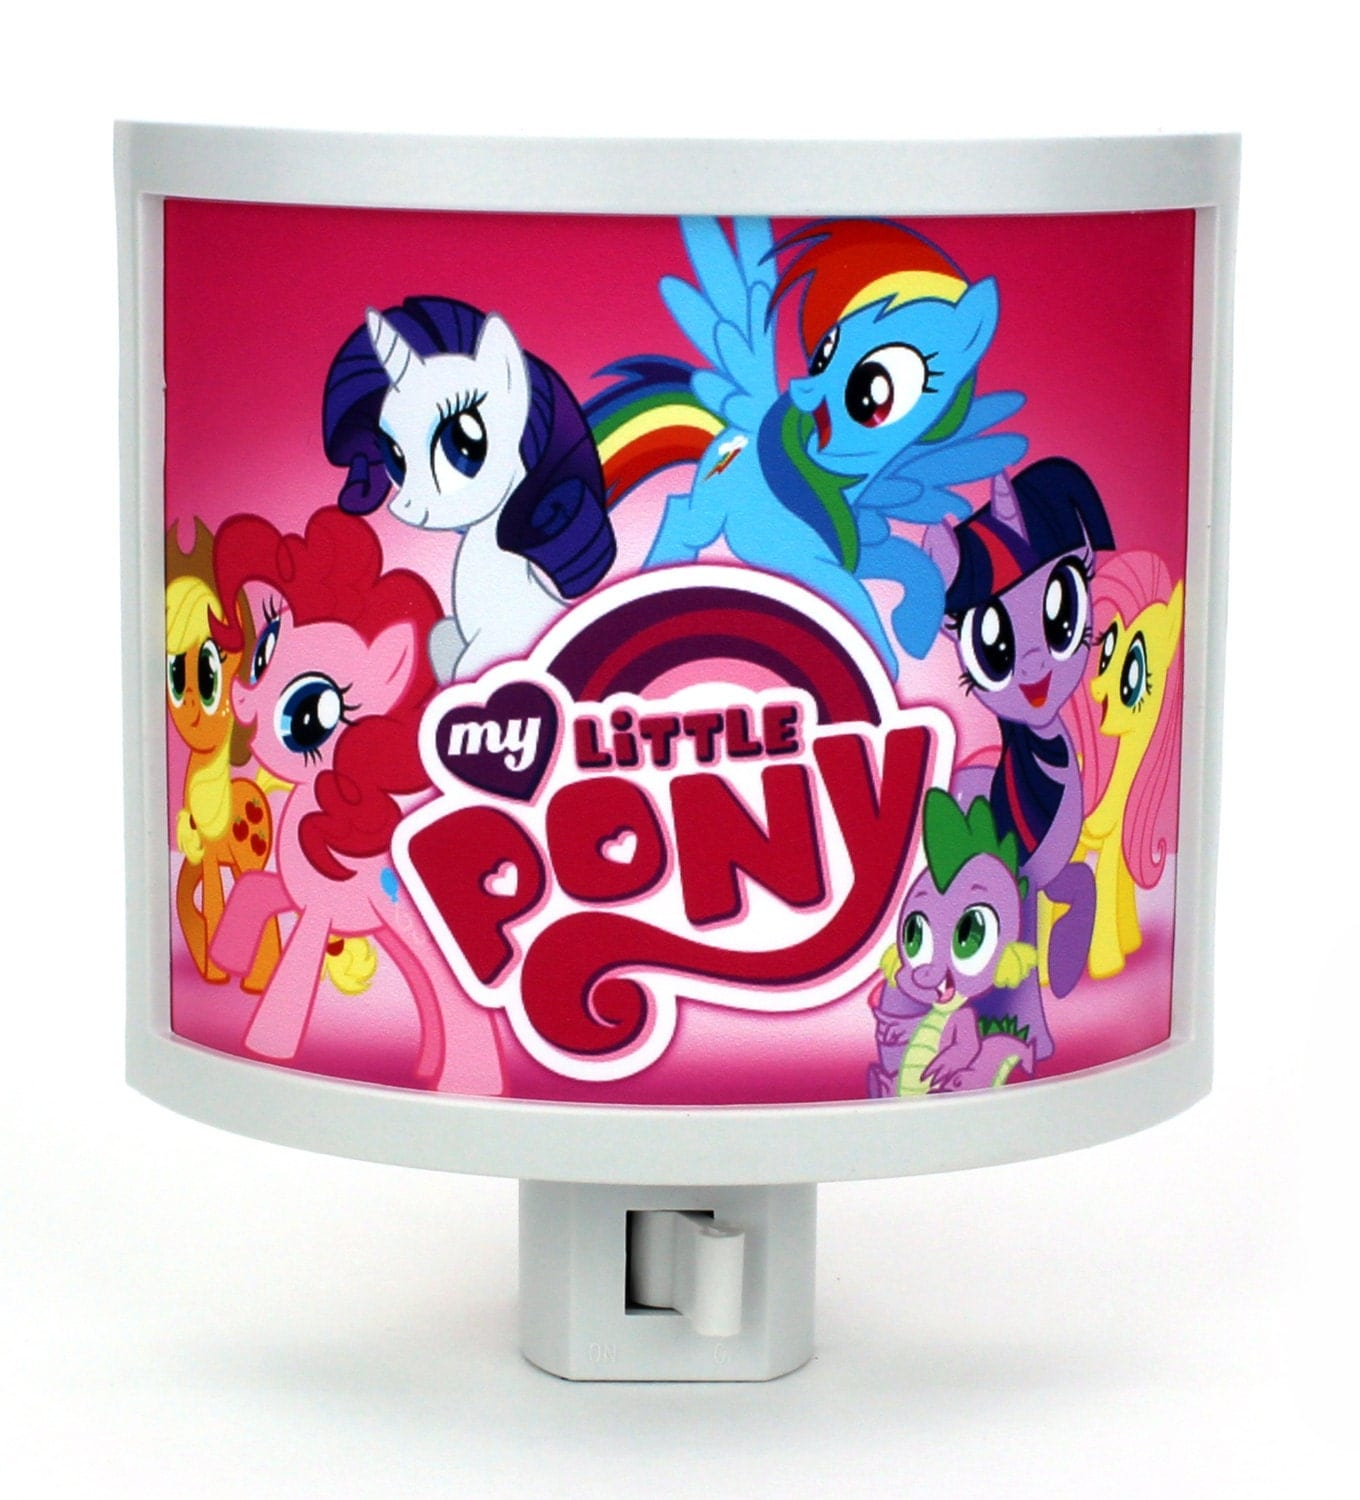 my little pony night light girls room decor gifts under 20 for